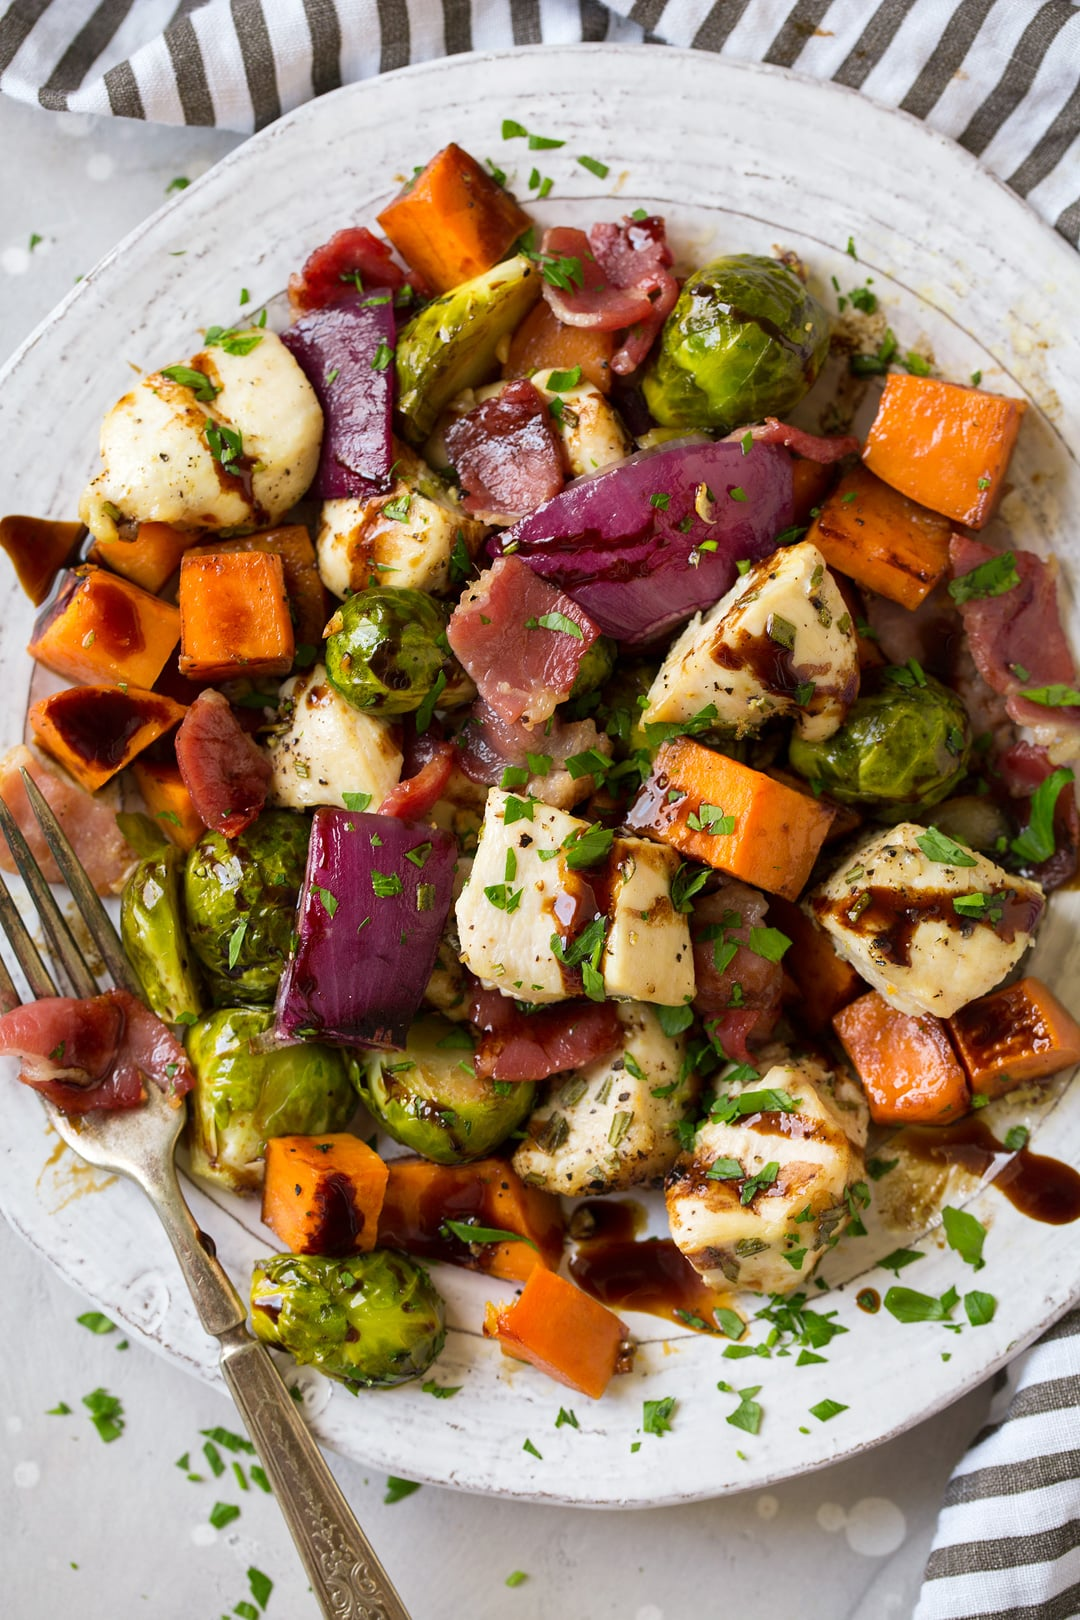 sheet pan chicken sweet potatoes and brussels sprouts with bacon and balsamic glaze recipe